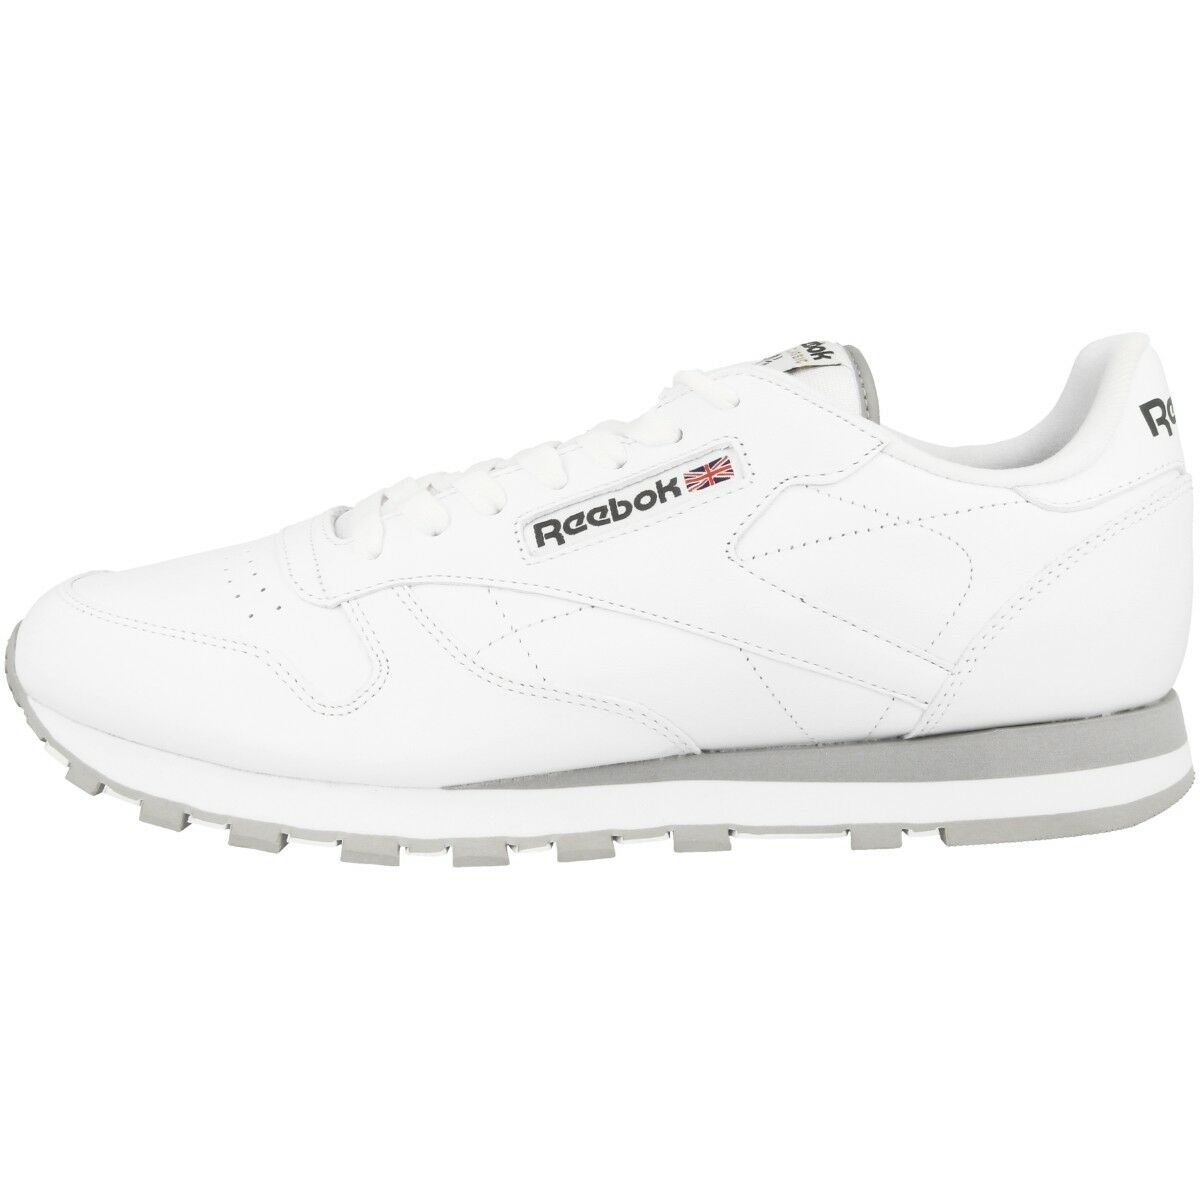 Zapatos promocionales para hombres y mujeres REEBOK CLASSIC LEATHER SNEAKER SCHUHE WEISS 2214 FREIZEIT SPORT FITNESS